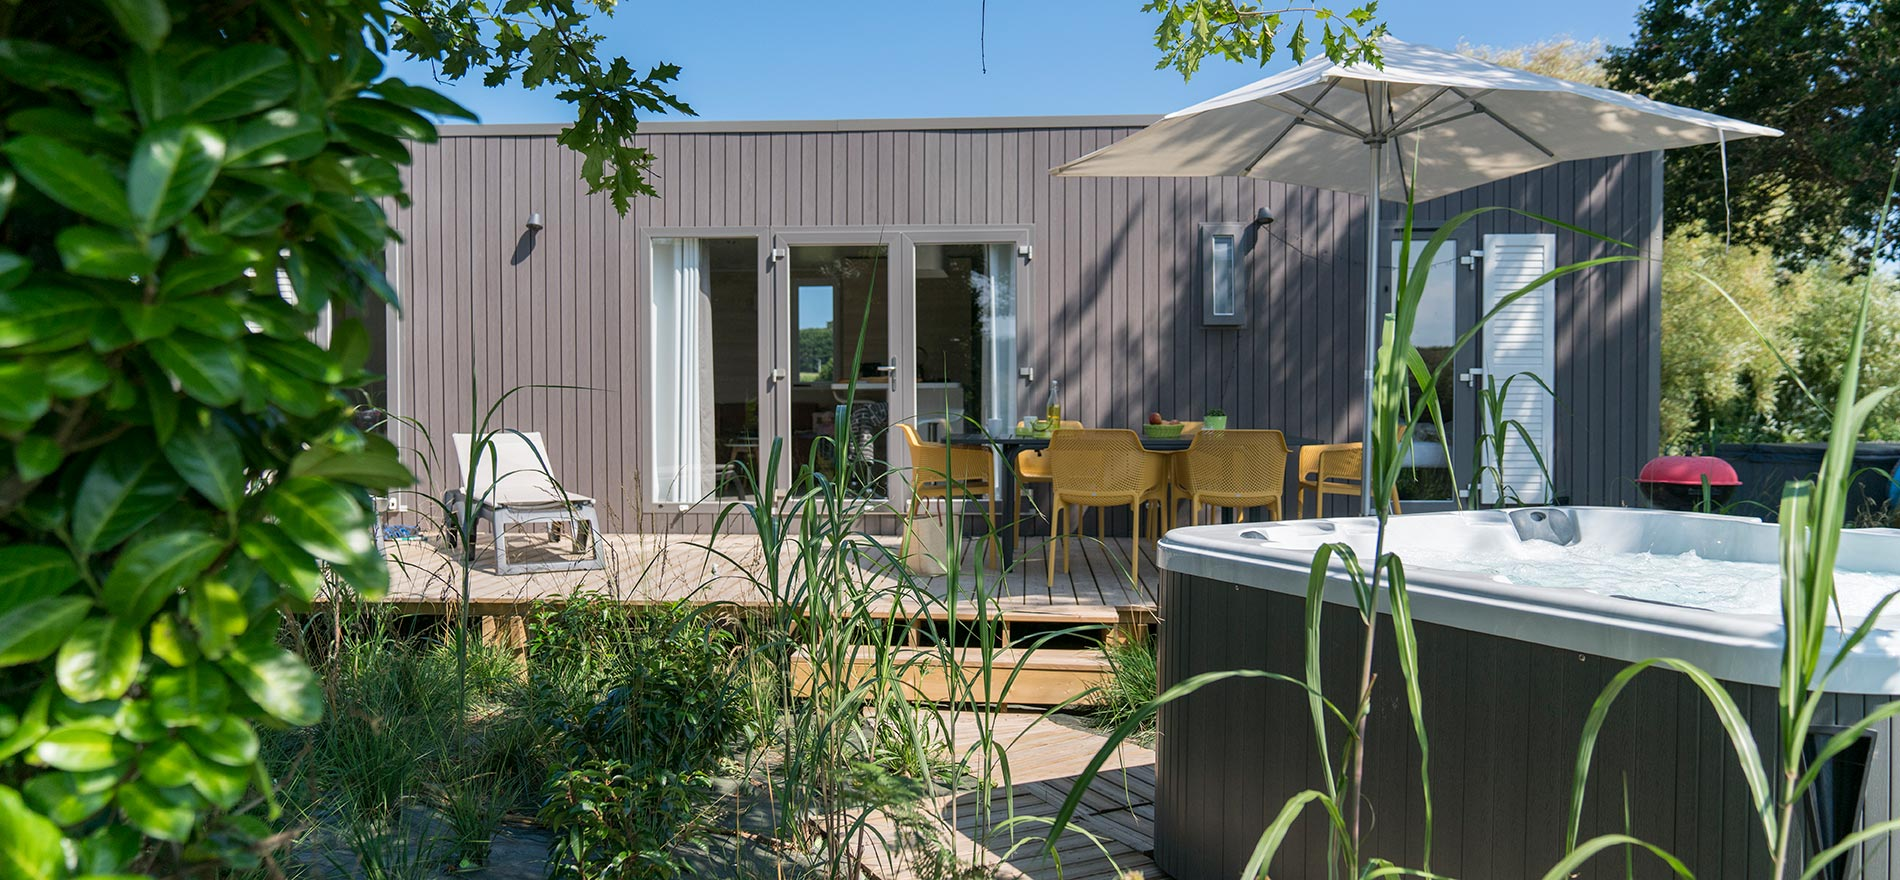 Terrasse Mobil Home Pas Cher Les Cottages Avec Spa Privatif Chez Yelloh Village